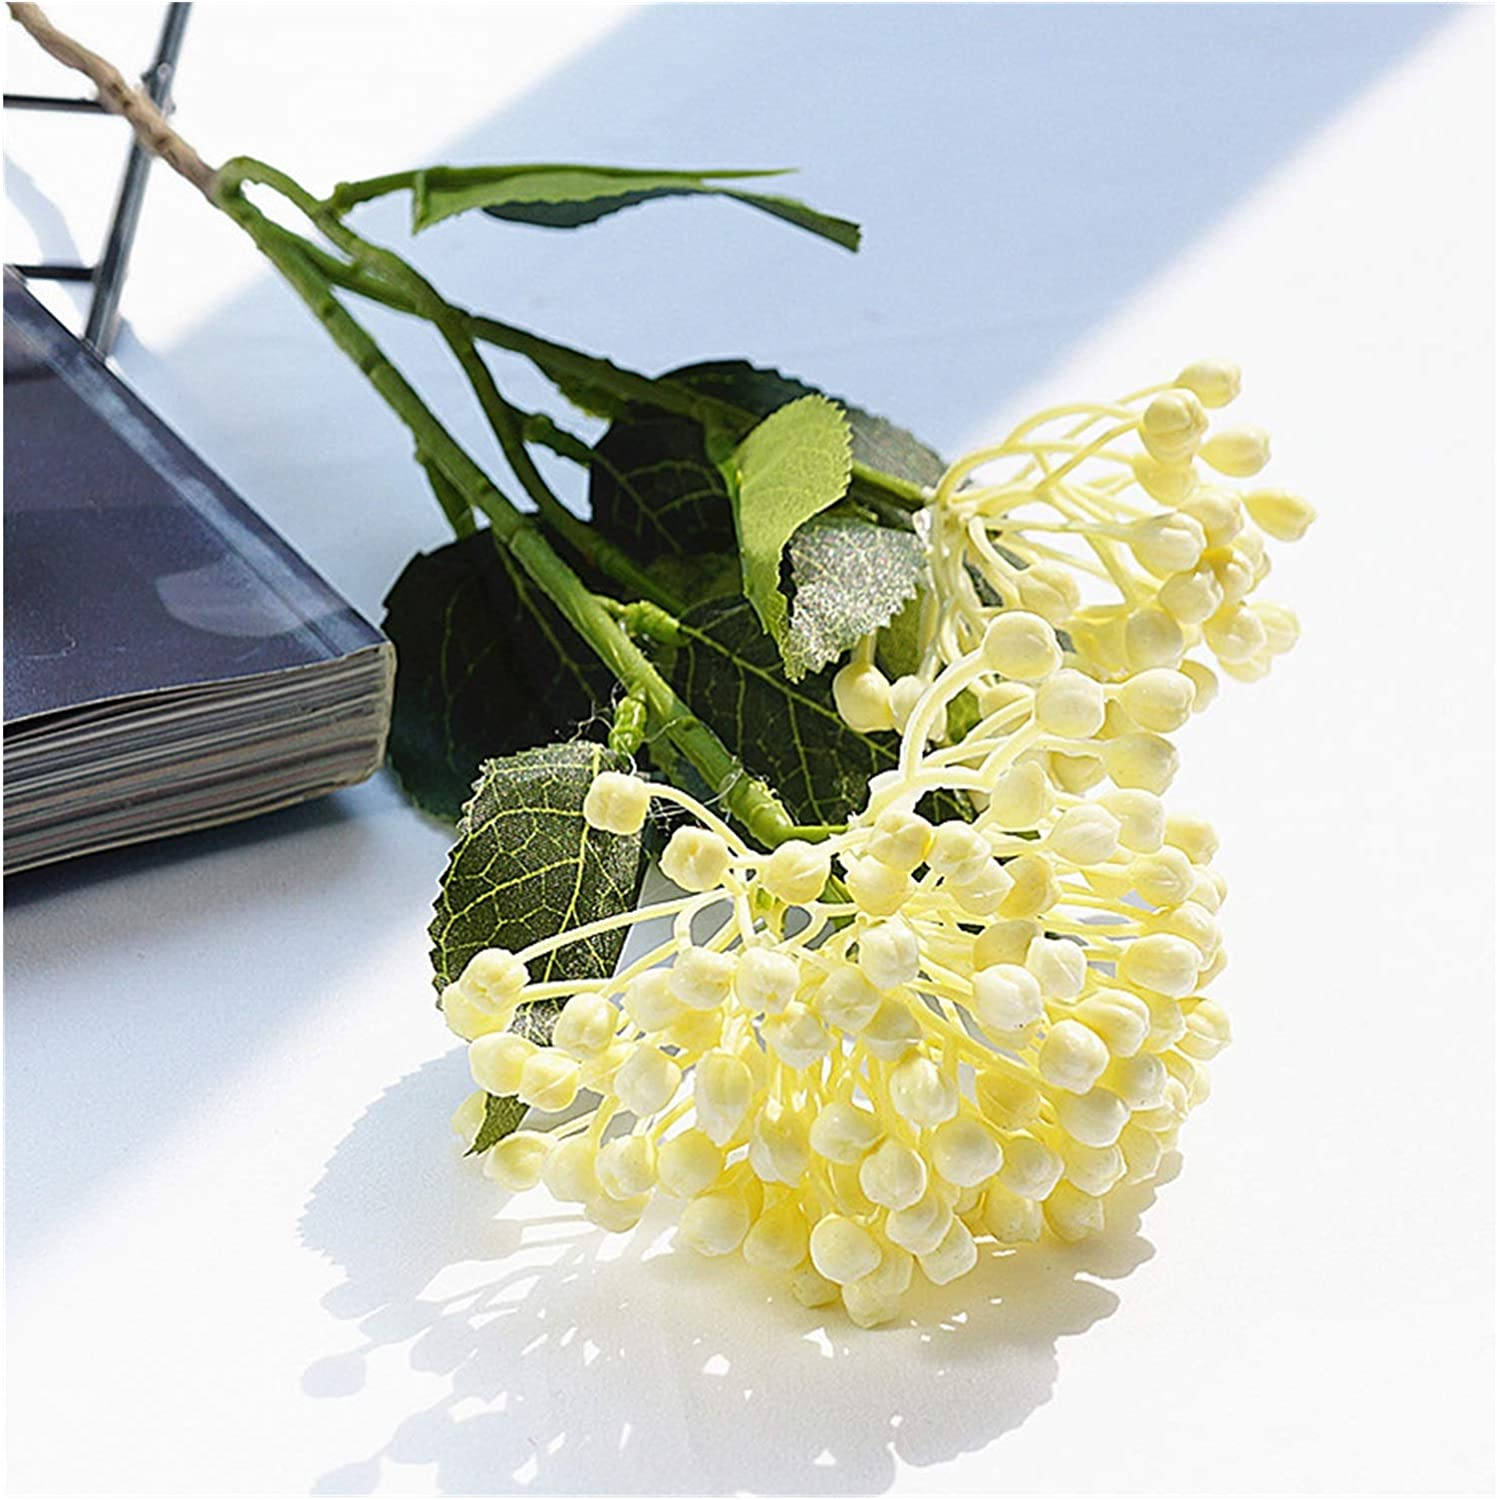 YSHSPED Chicago Mall Artificial Max 87% OFF Flowers Garde Home Plastic